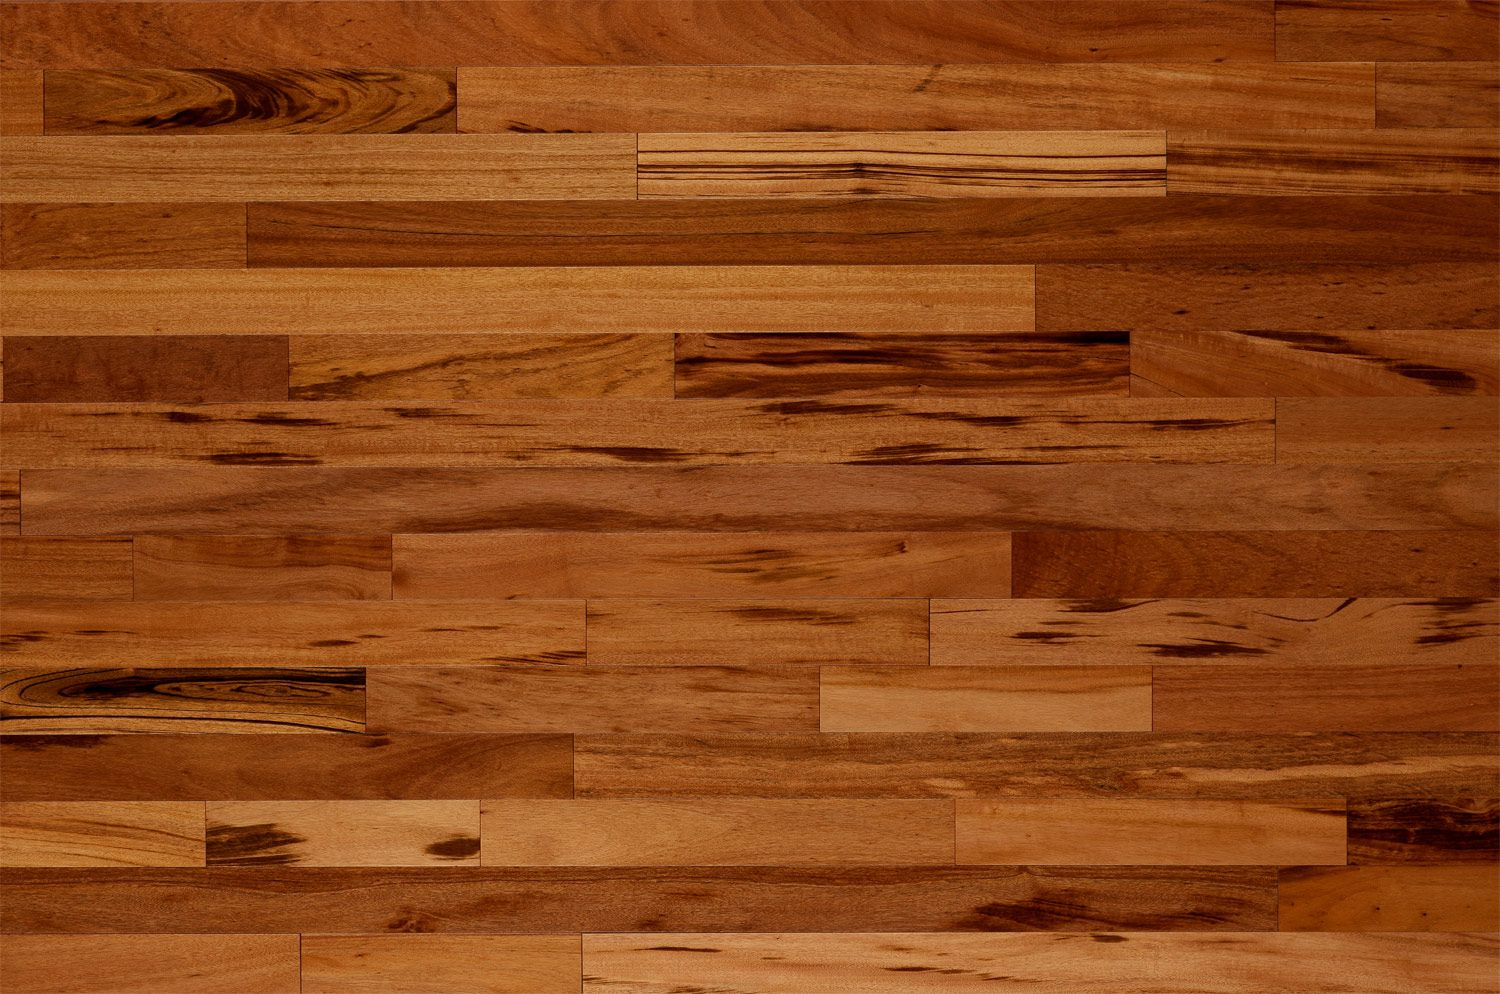 tile classics armstrong creations wood luxury floors tiger lvt x tigerwood vinyl blonde flooring natural products